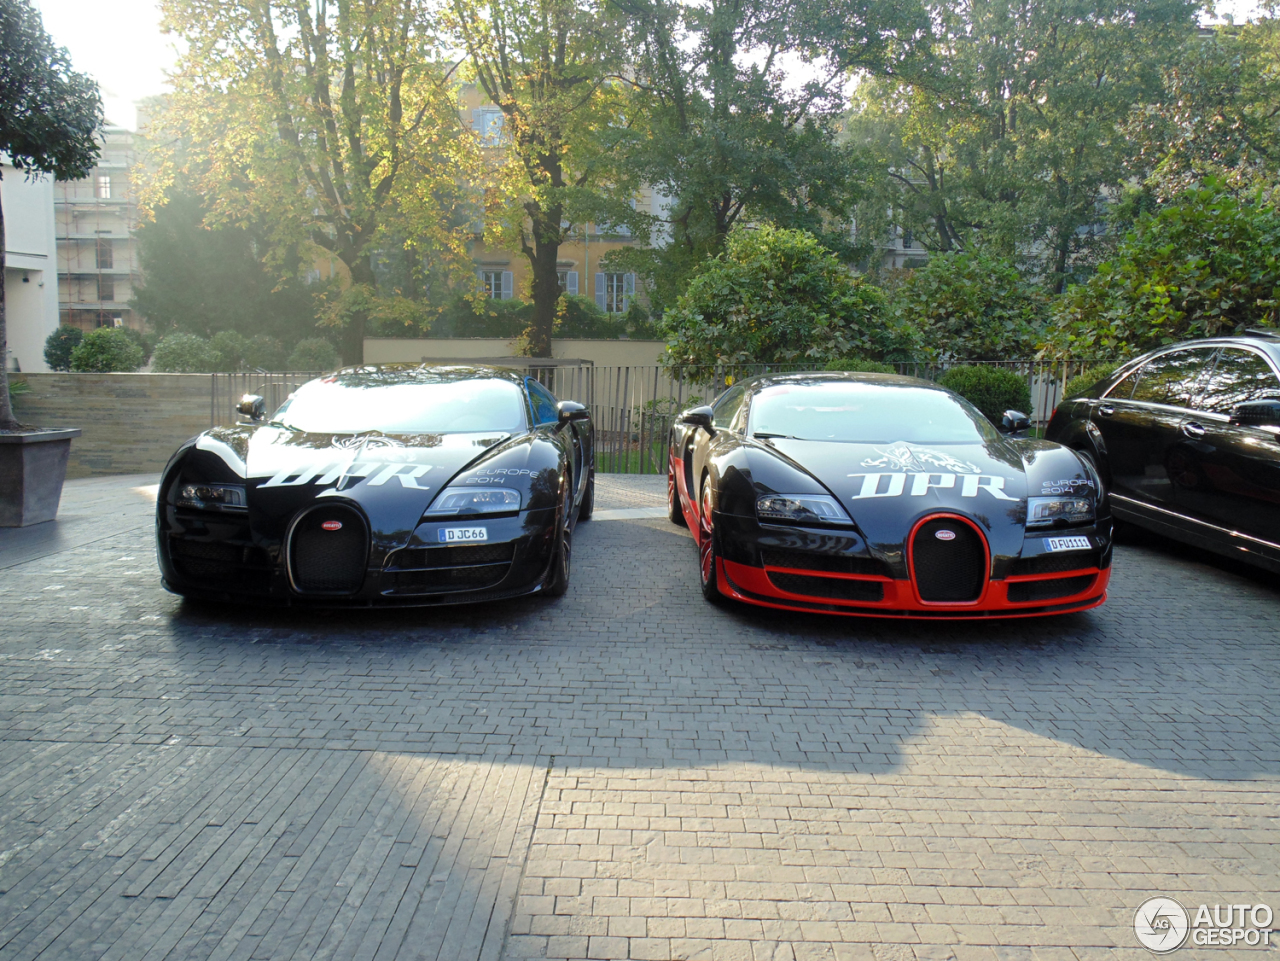 bugatti veyron 16 4 super sport edition merveilleux 2 november 2014 autog. Black Bedroom Furniture Sets. Home Design Ideas